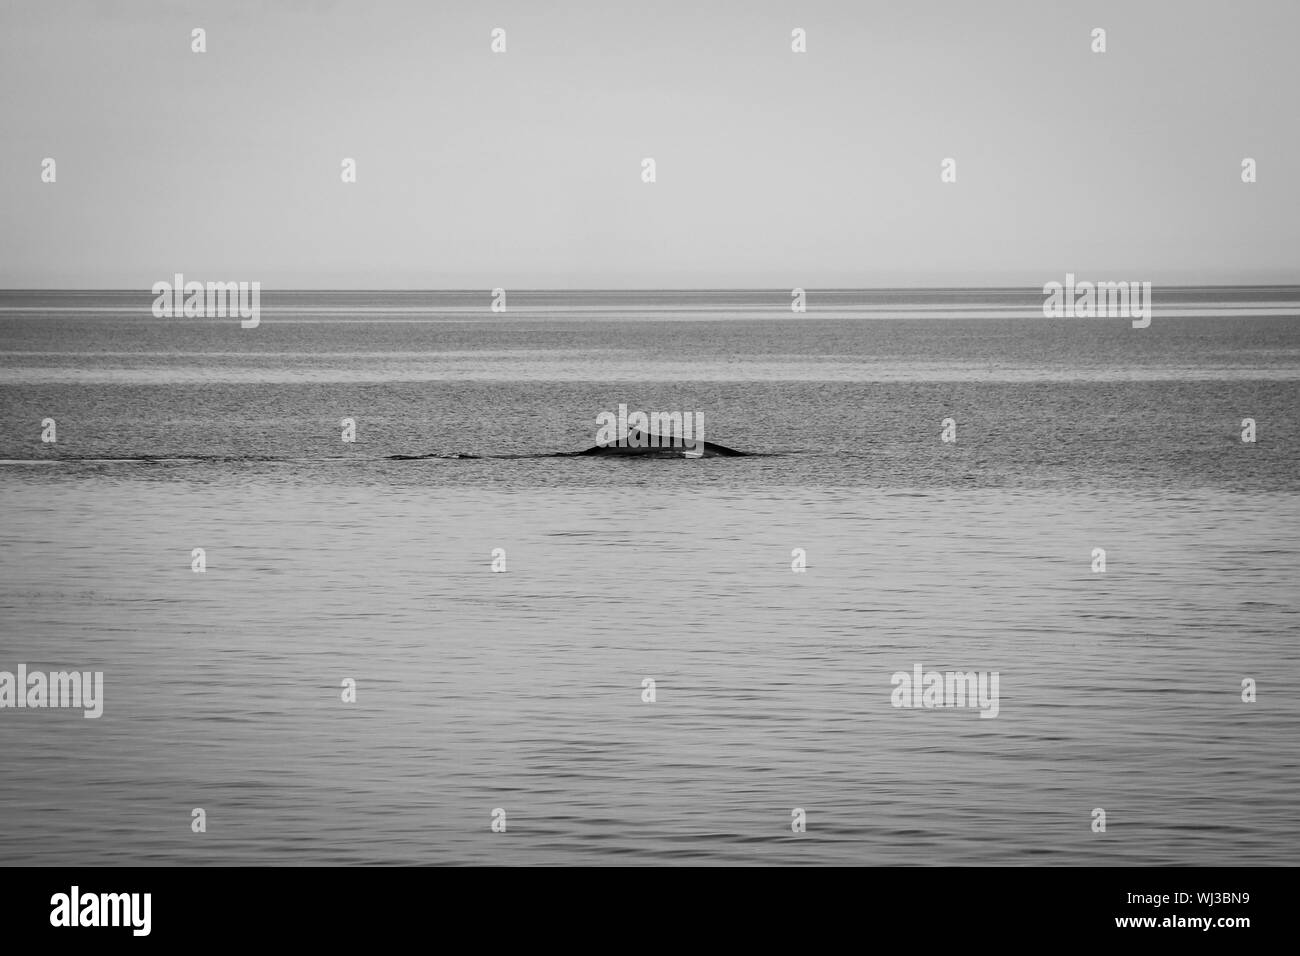 Whale Swimming In Sea Against Clear Sky Stock Photo